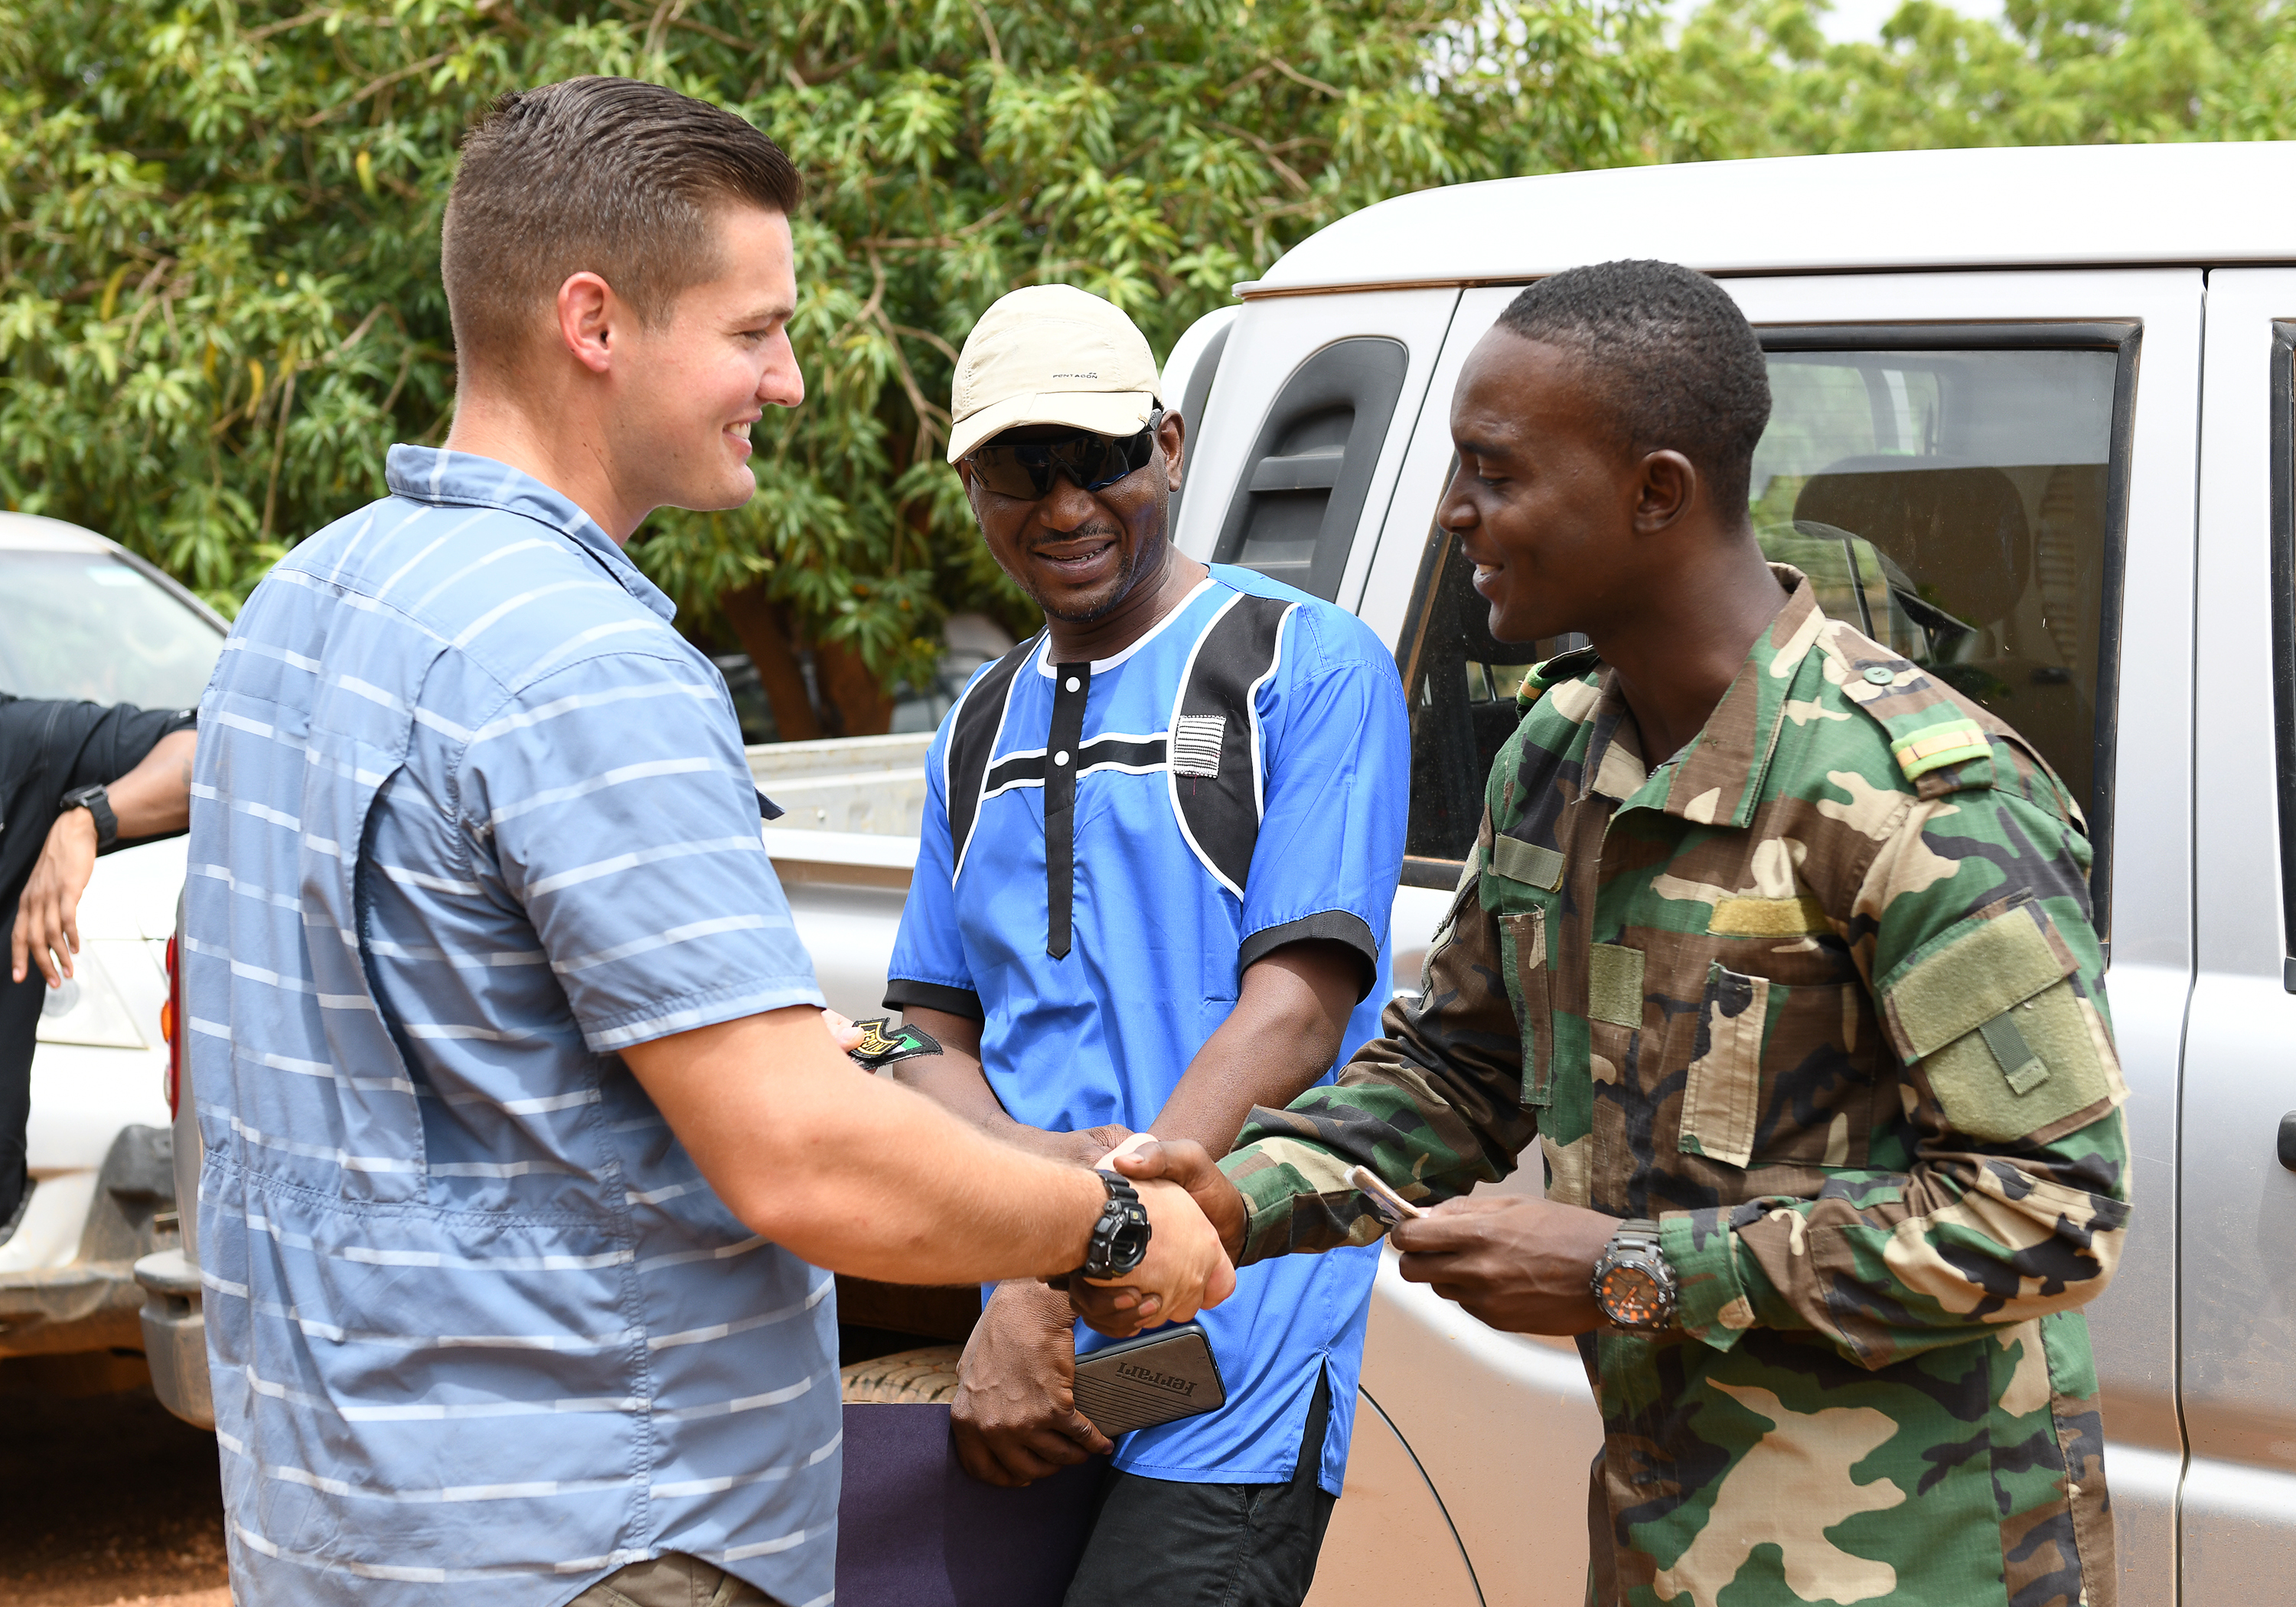 U.S. Air Force Senior Airman Brandon Cummings, 768th Expeditionary Air Base Squadron Security Force Air Advisor, and a member of the Forces Armées Nigeriennes (Nigerien Armed Forces) trade patches after an Improvised Explosive Device Awareness Course for in Niamey, Niger, Oct. 11, 2019. During this week-long course, the FAN learned how to locate and react to an IED, how to set up a cordon and the procedures to clear the area. (U.S. Air Force photo by Staff Sgt. Alex Fox Echols III)